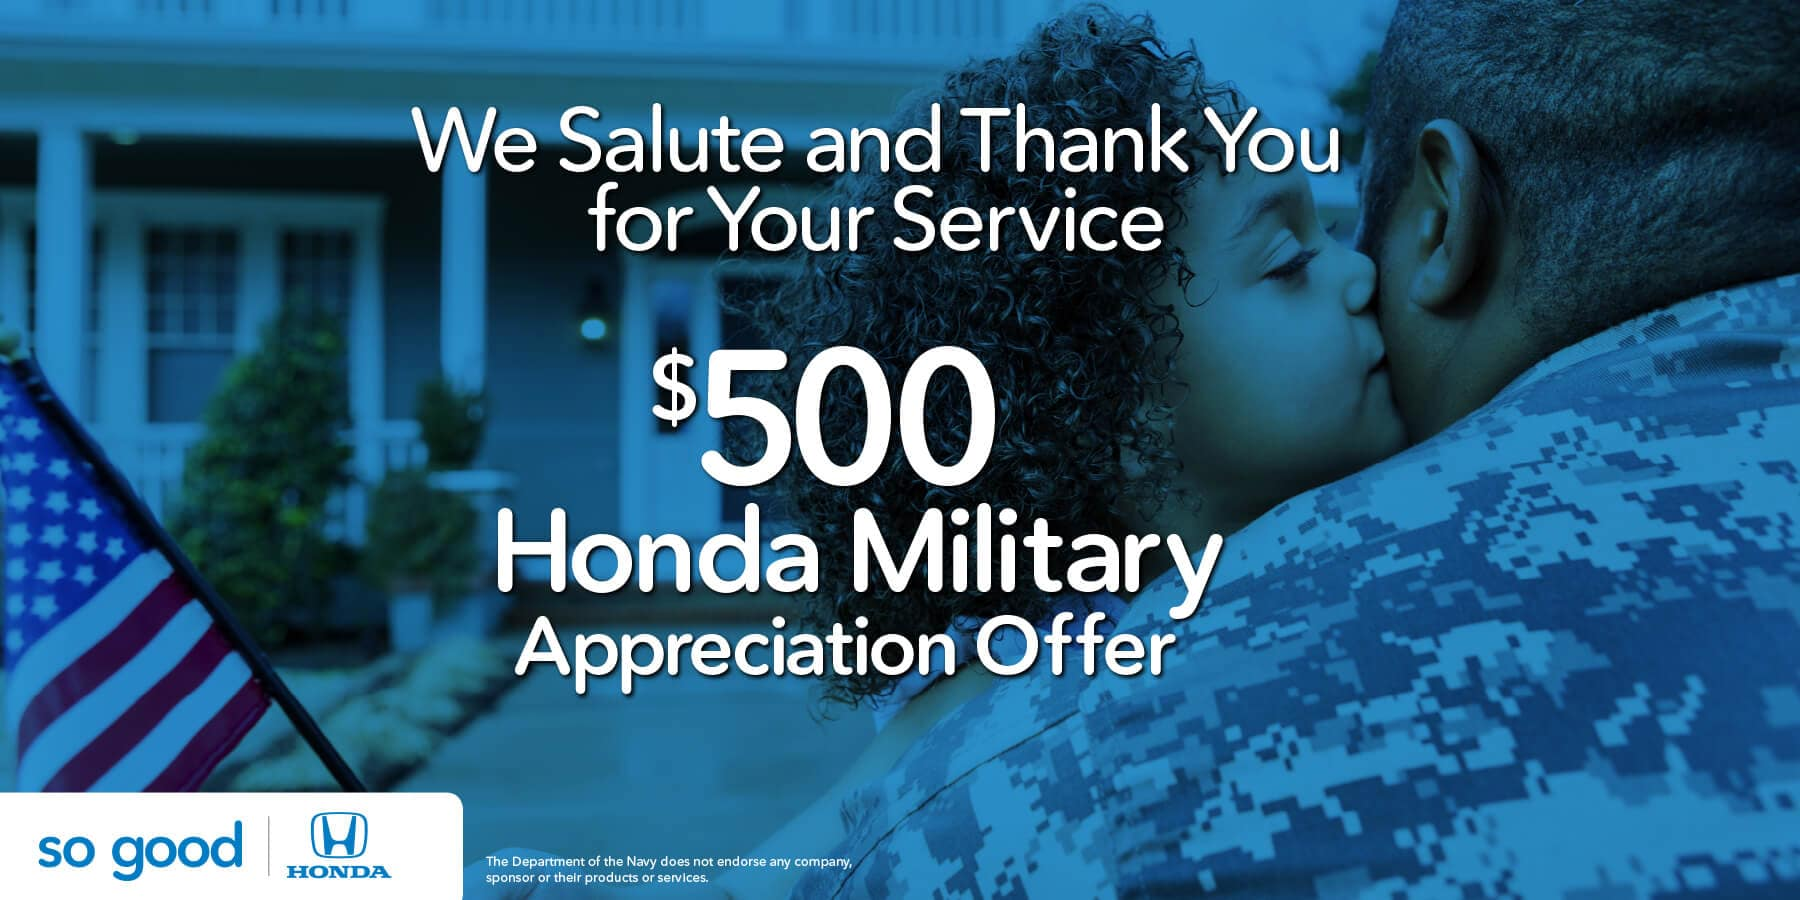 Honda Military Appreciation Offer Capital Region Honda Dealers HP Slide